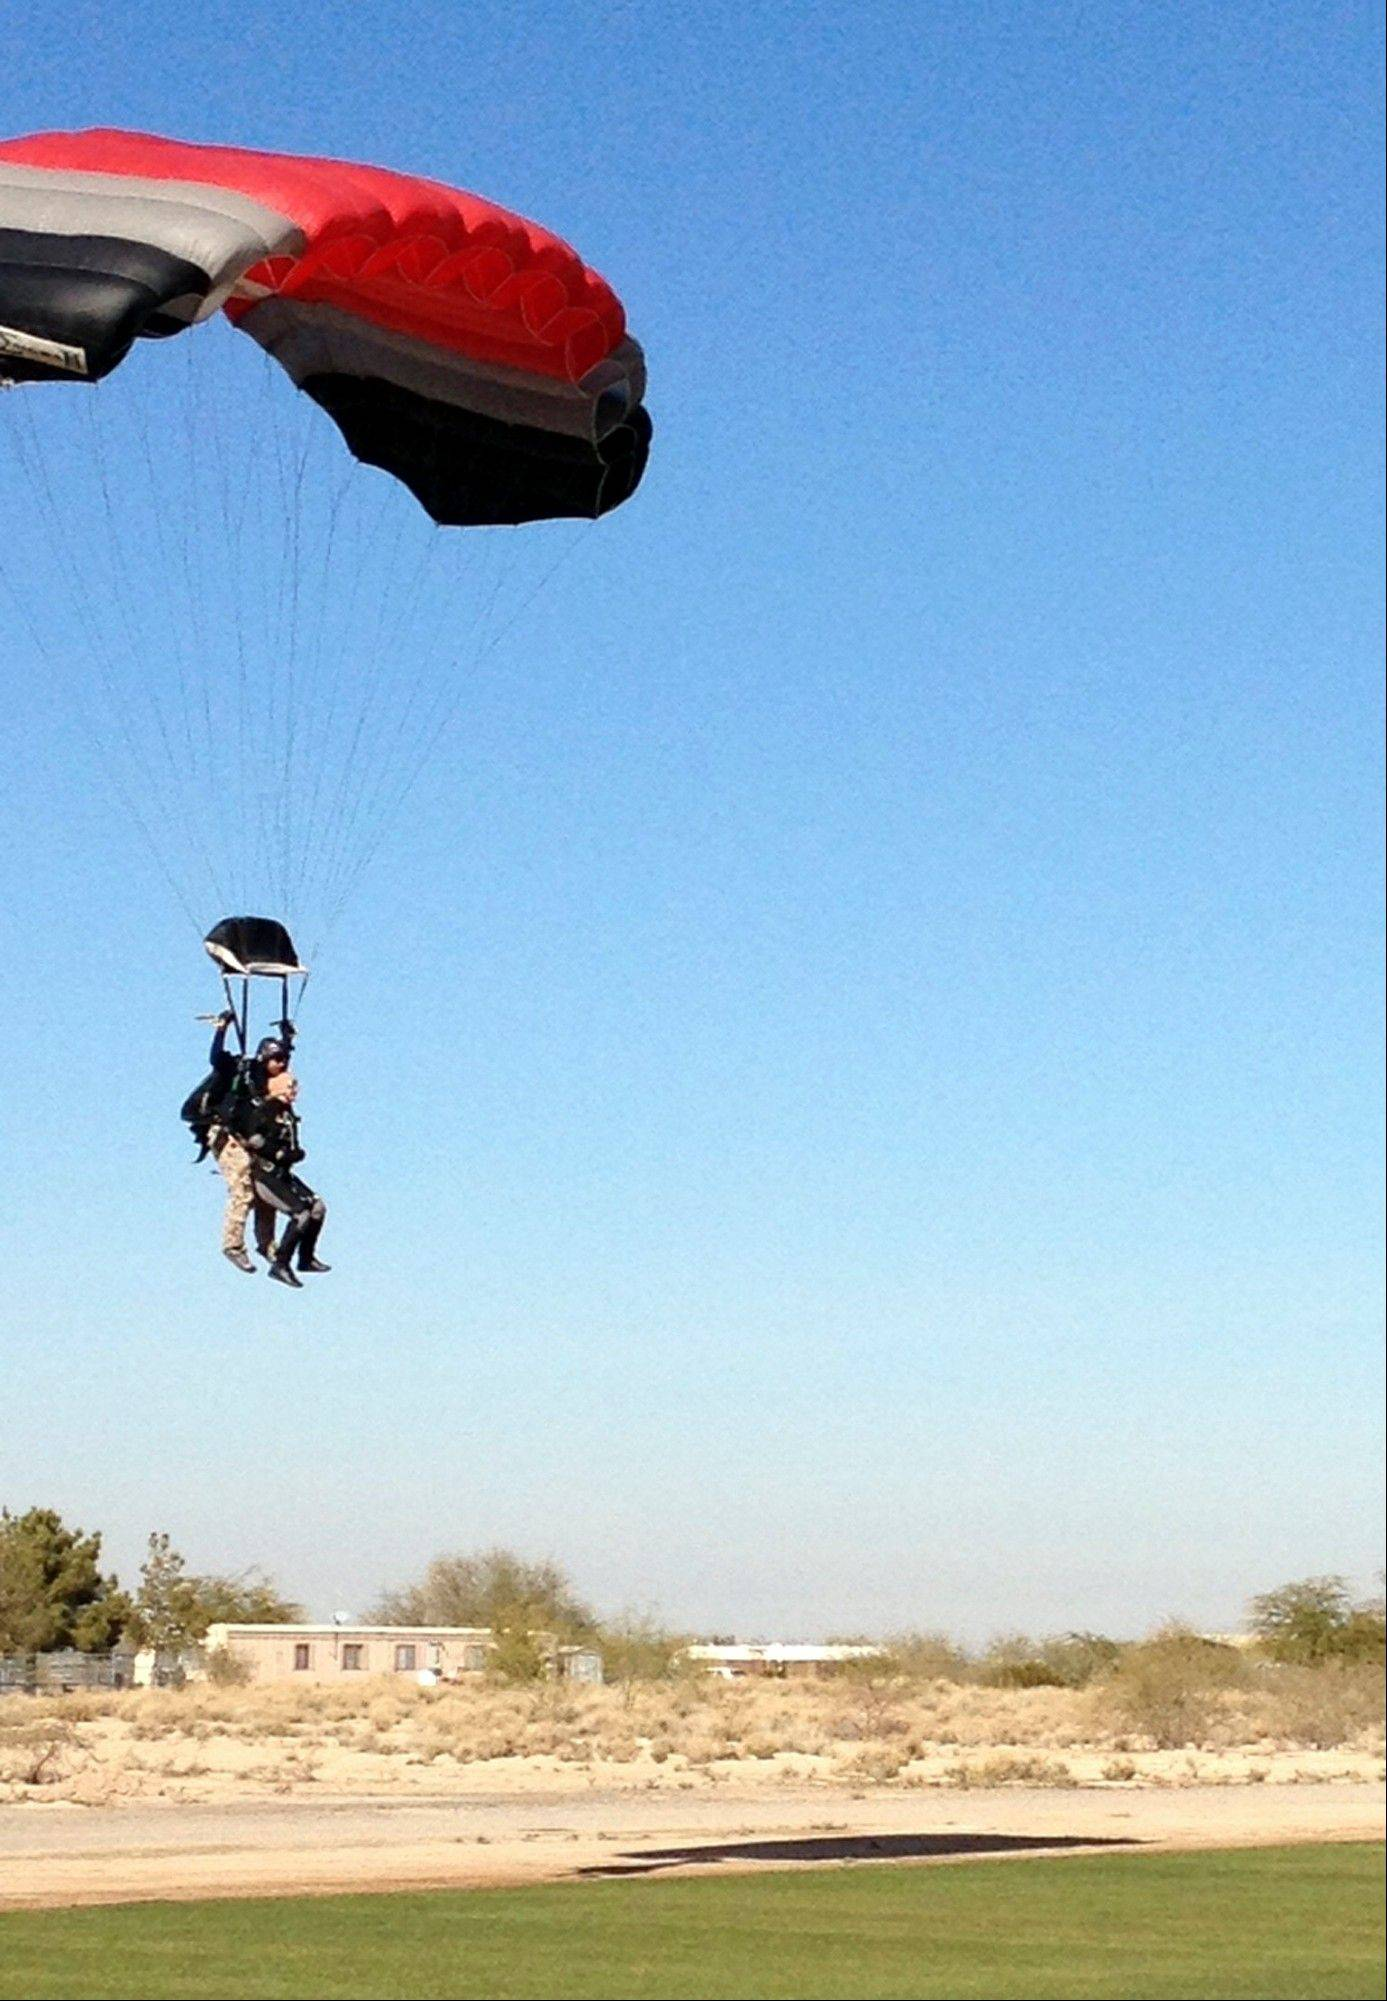 Former U.S. Rep. Gabrielle Giffords, right, comes in for a landing during a tandem sky-dive Wednesday, Jan. 8, 2014, in Tucson, Ariz. Giffords, severely injured three years ago in a mass shooting, marked the anniversary by sky diving for a report and interview for NBC�s �Today� show.